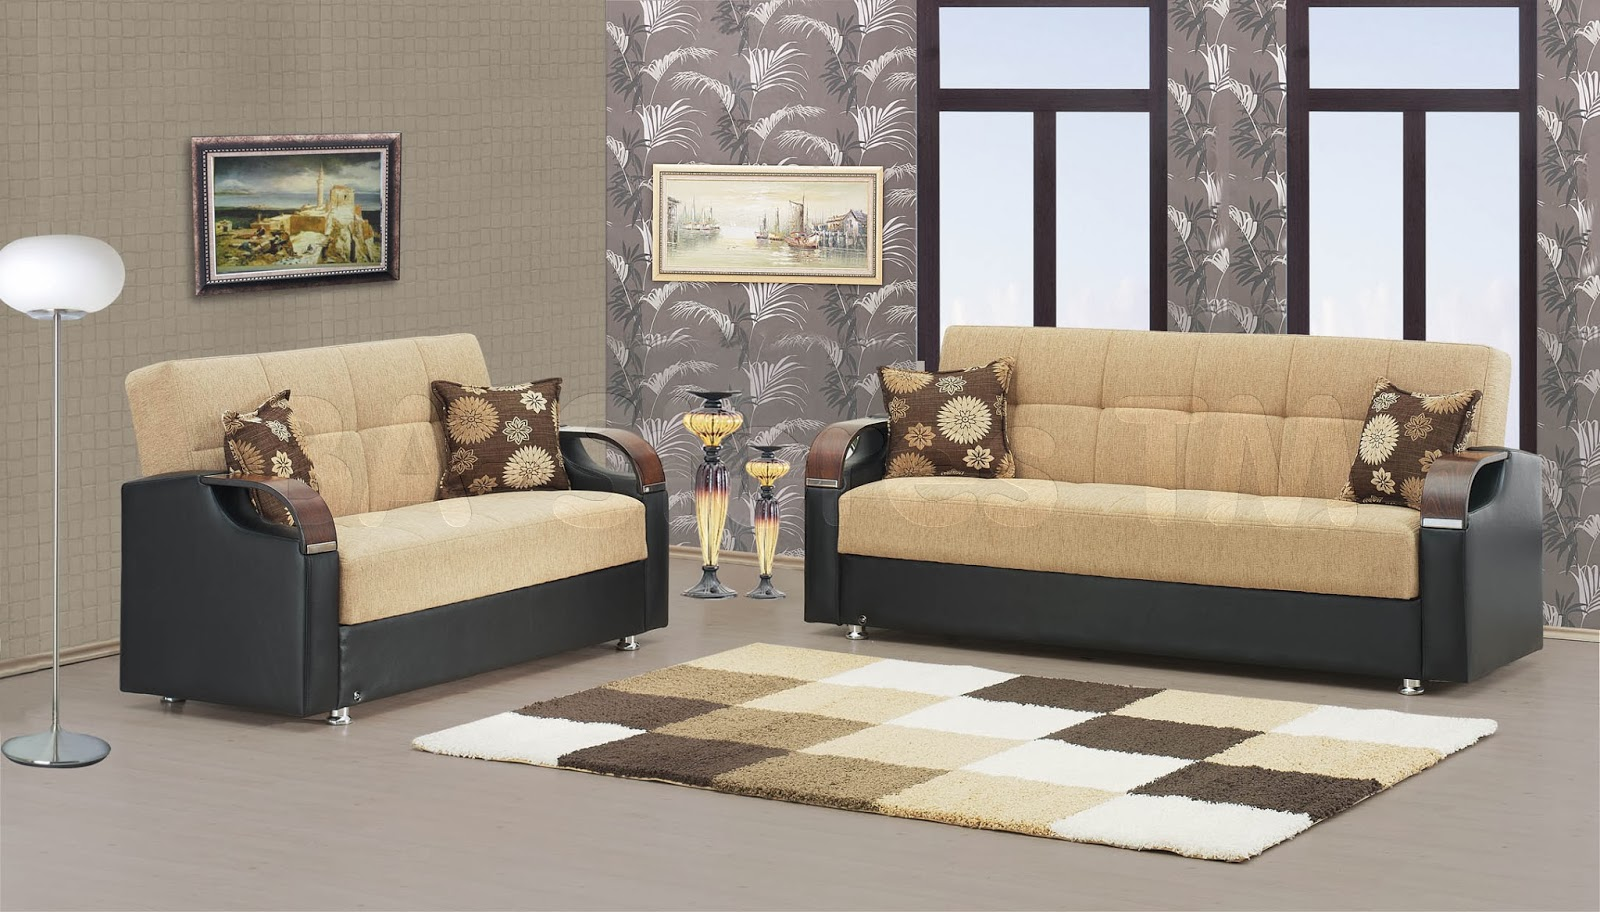 Living room design with leather sofa living room for Latest living room furniture designs